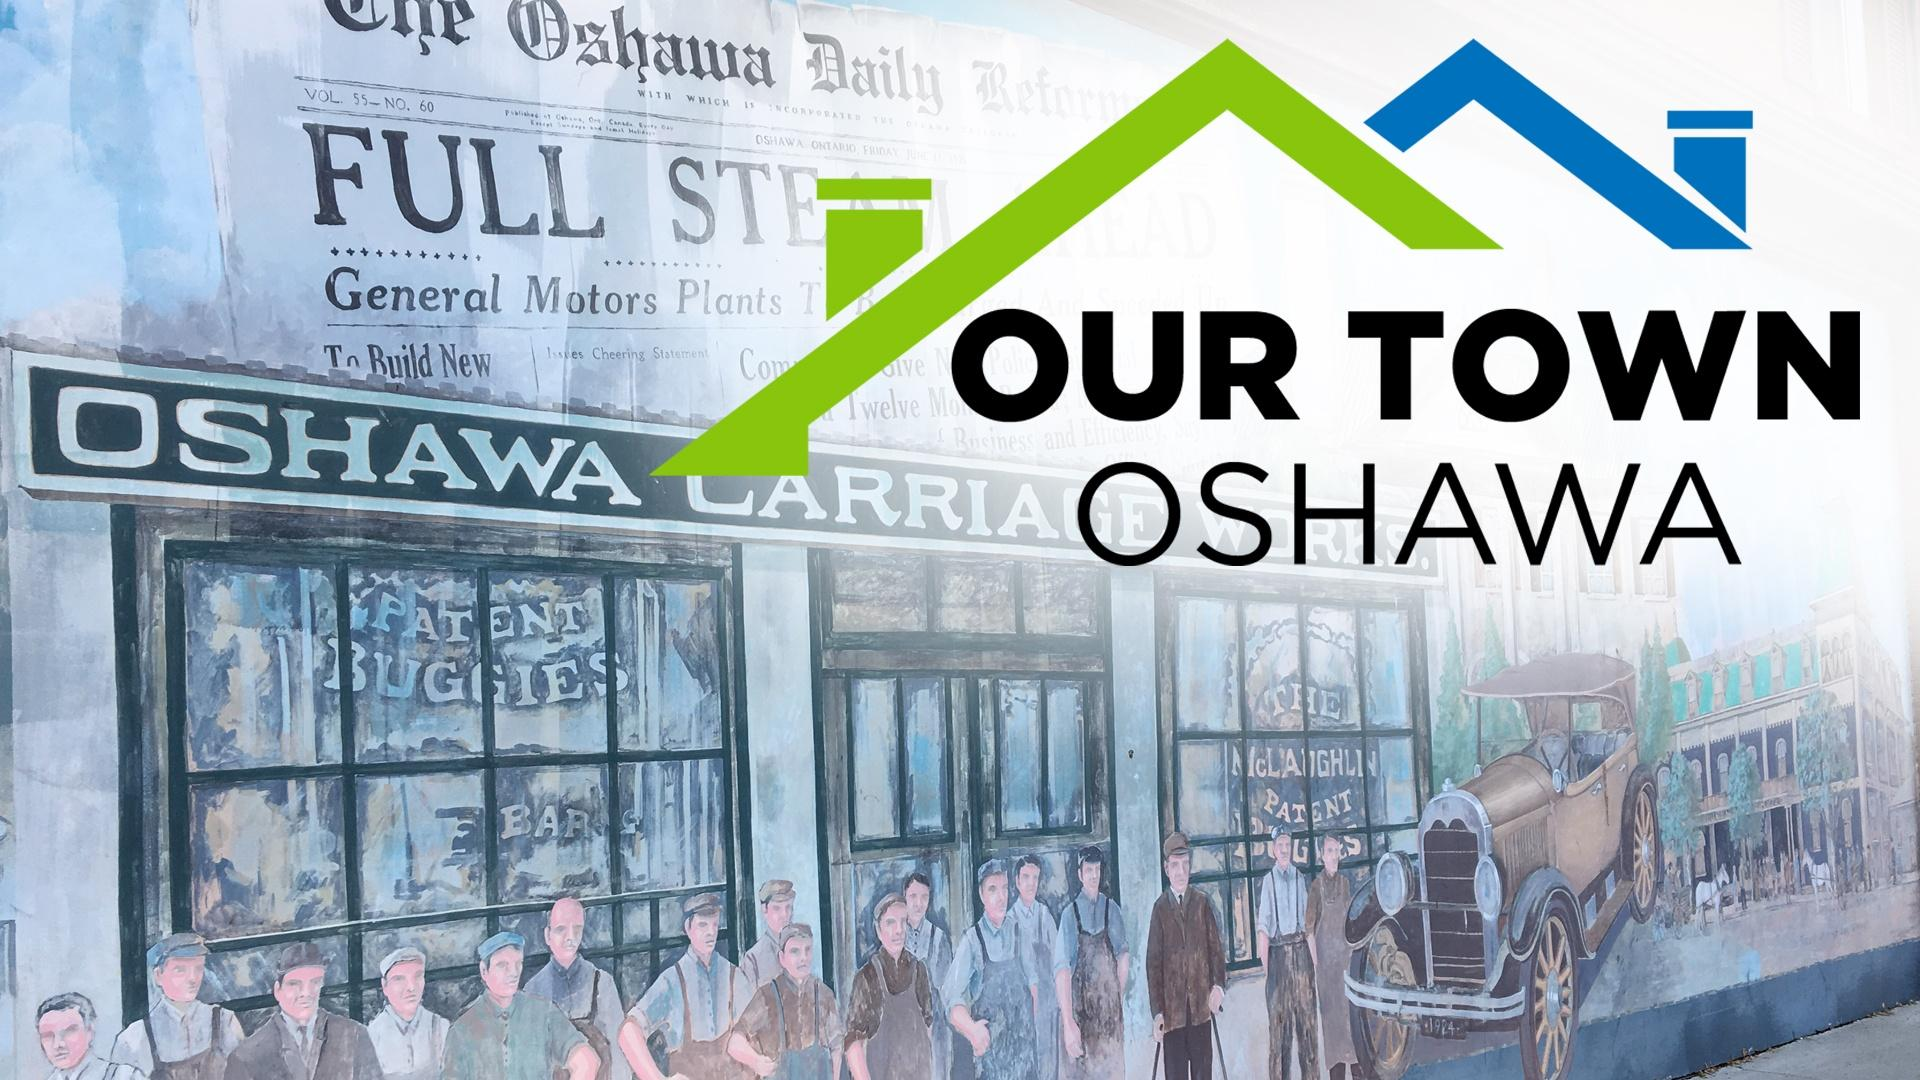 Our Town: Oshawa